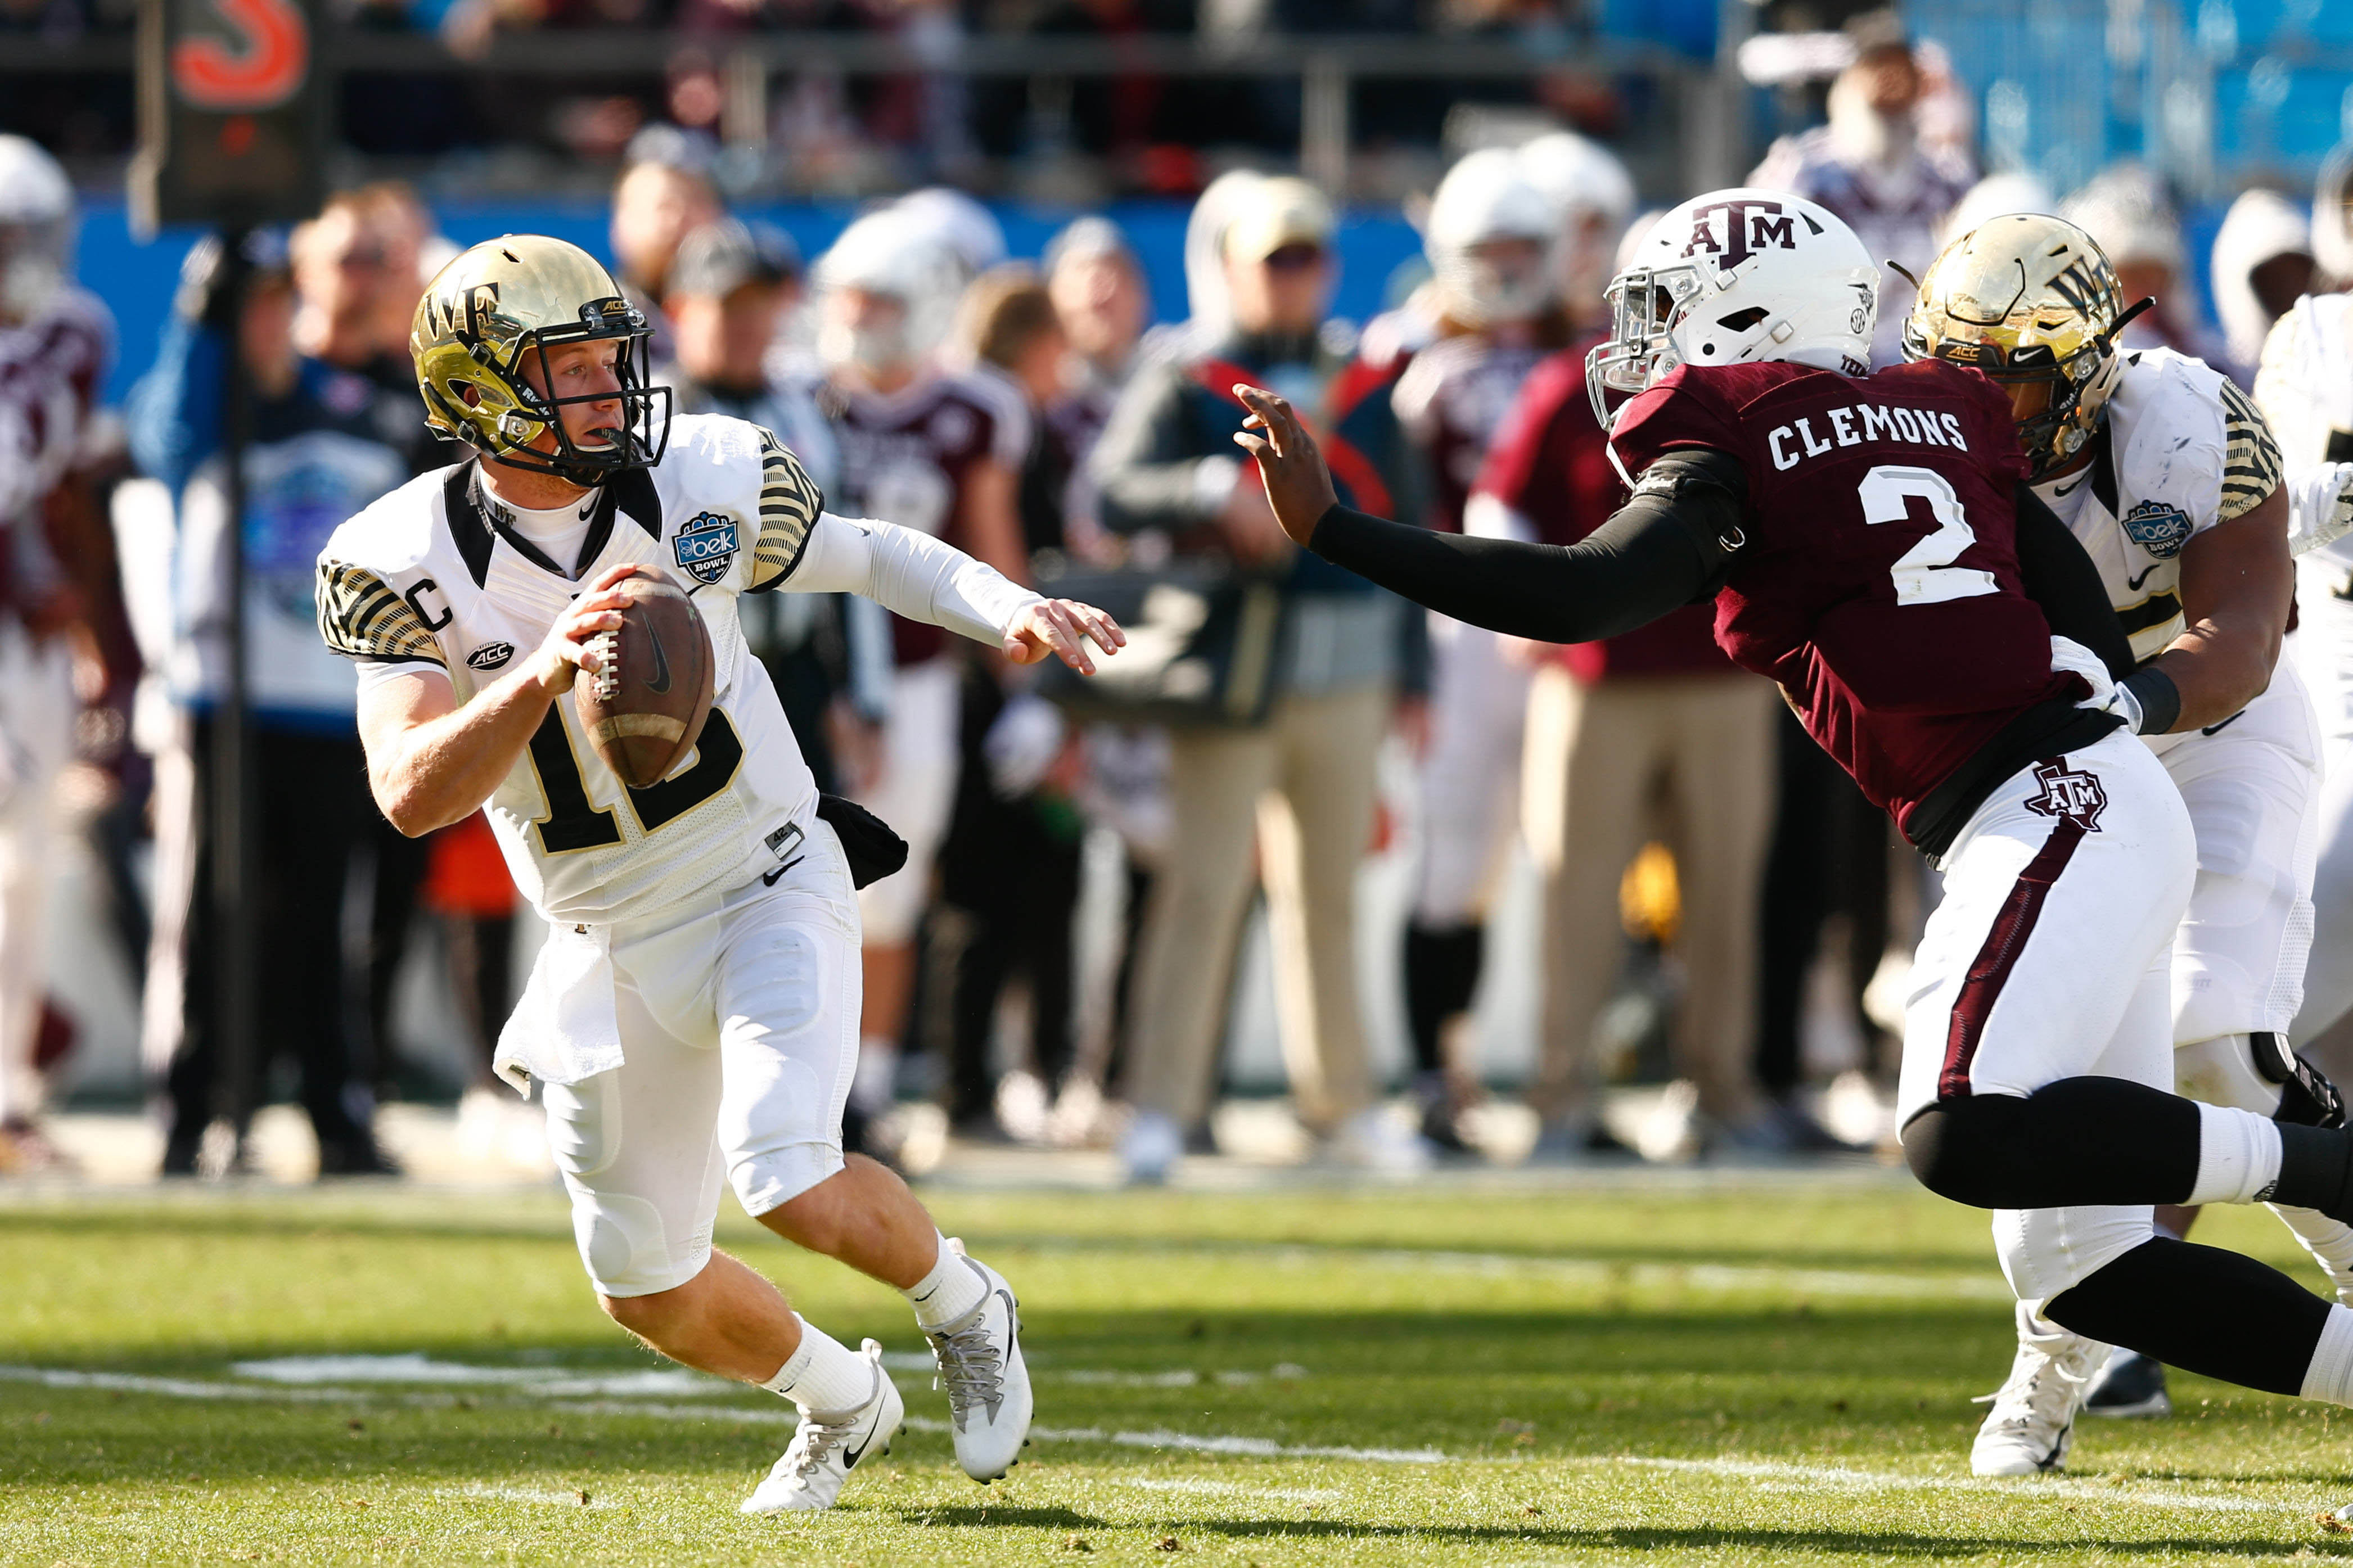 Texas A&M safety Armani Watts won't play in Belk Bowl